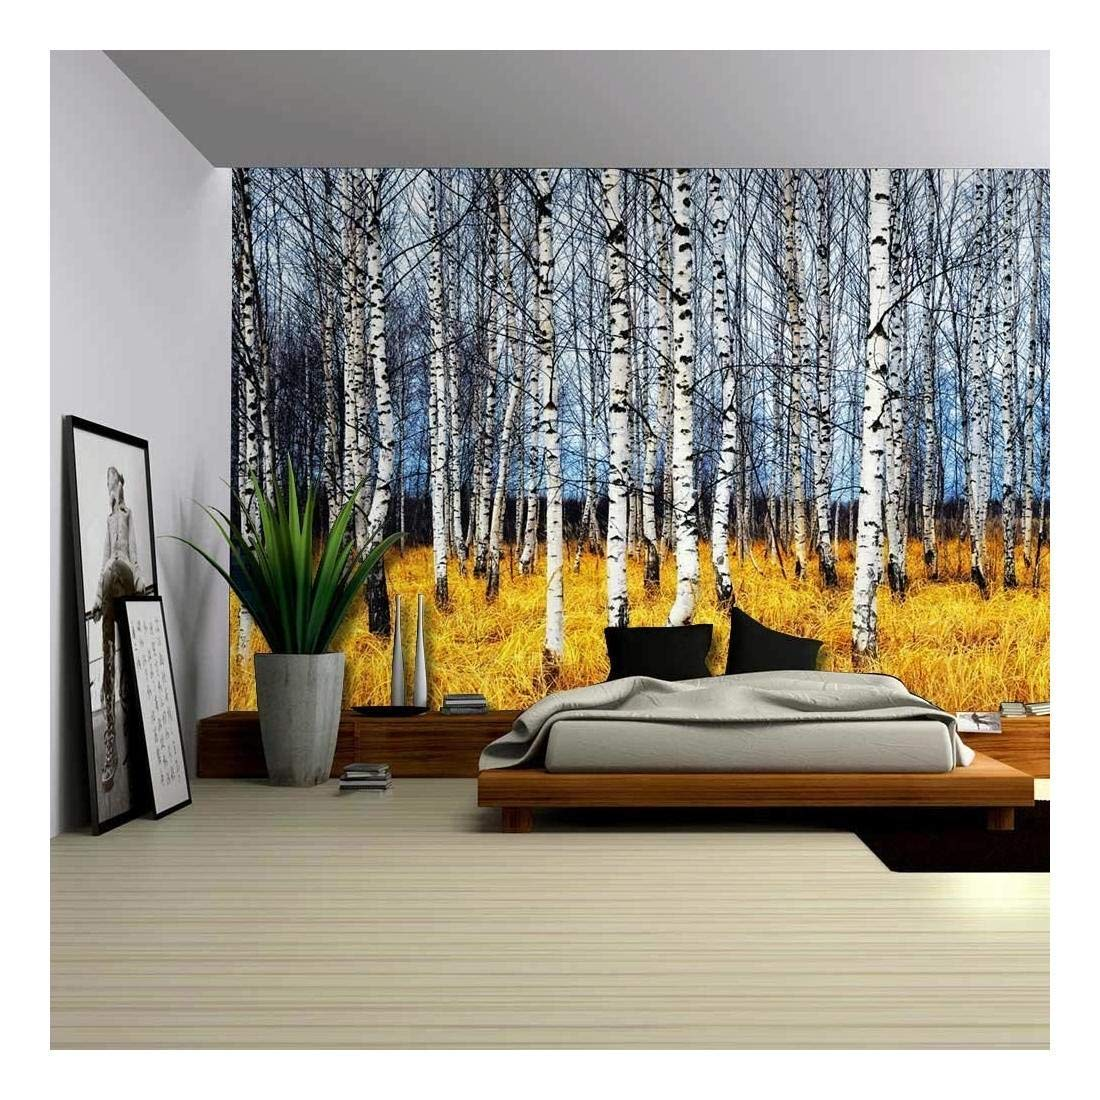 wall26 - Landscape Mural of a Birch Tree Forest - Wall Mural, Removable Sticker, Home Decor - 66x96 inches